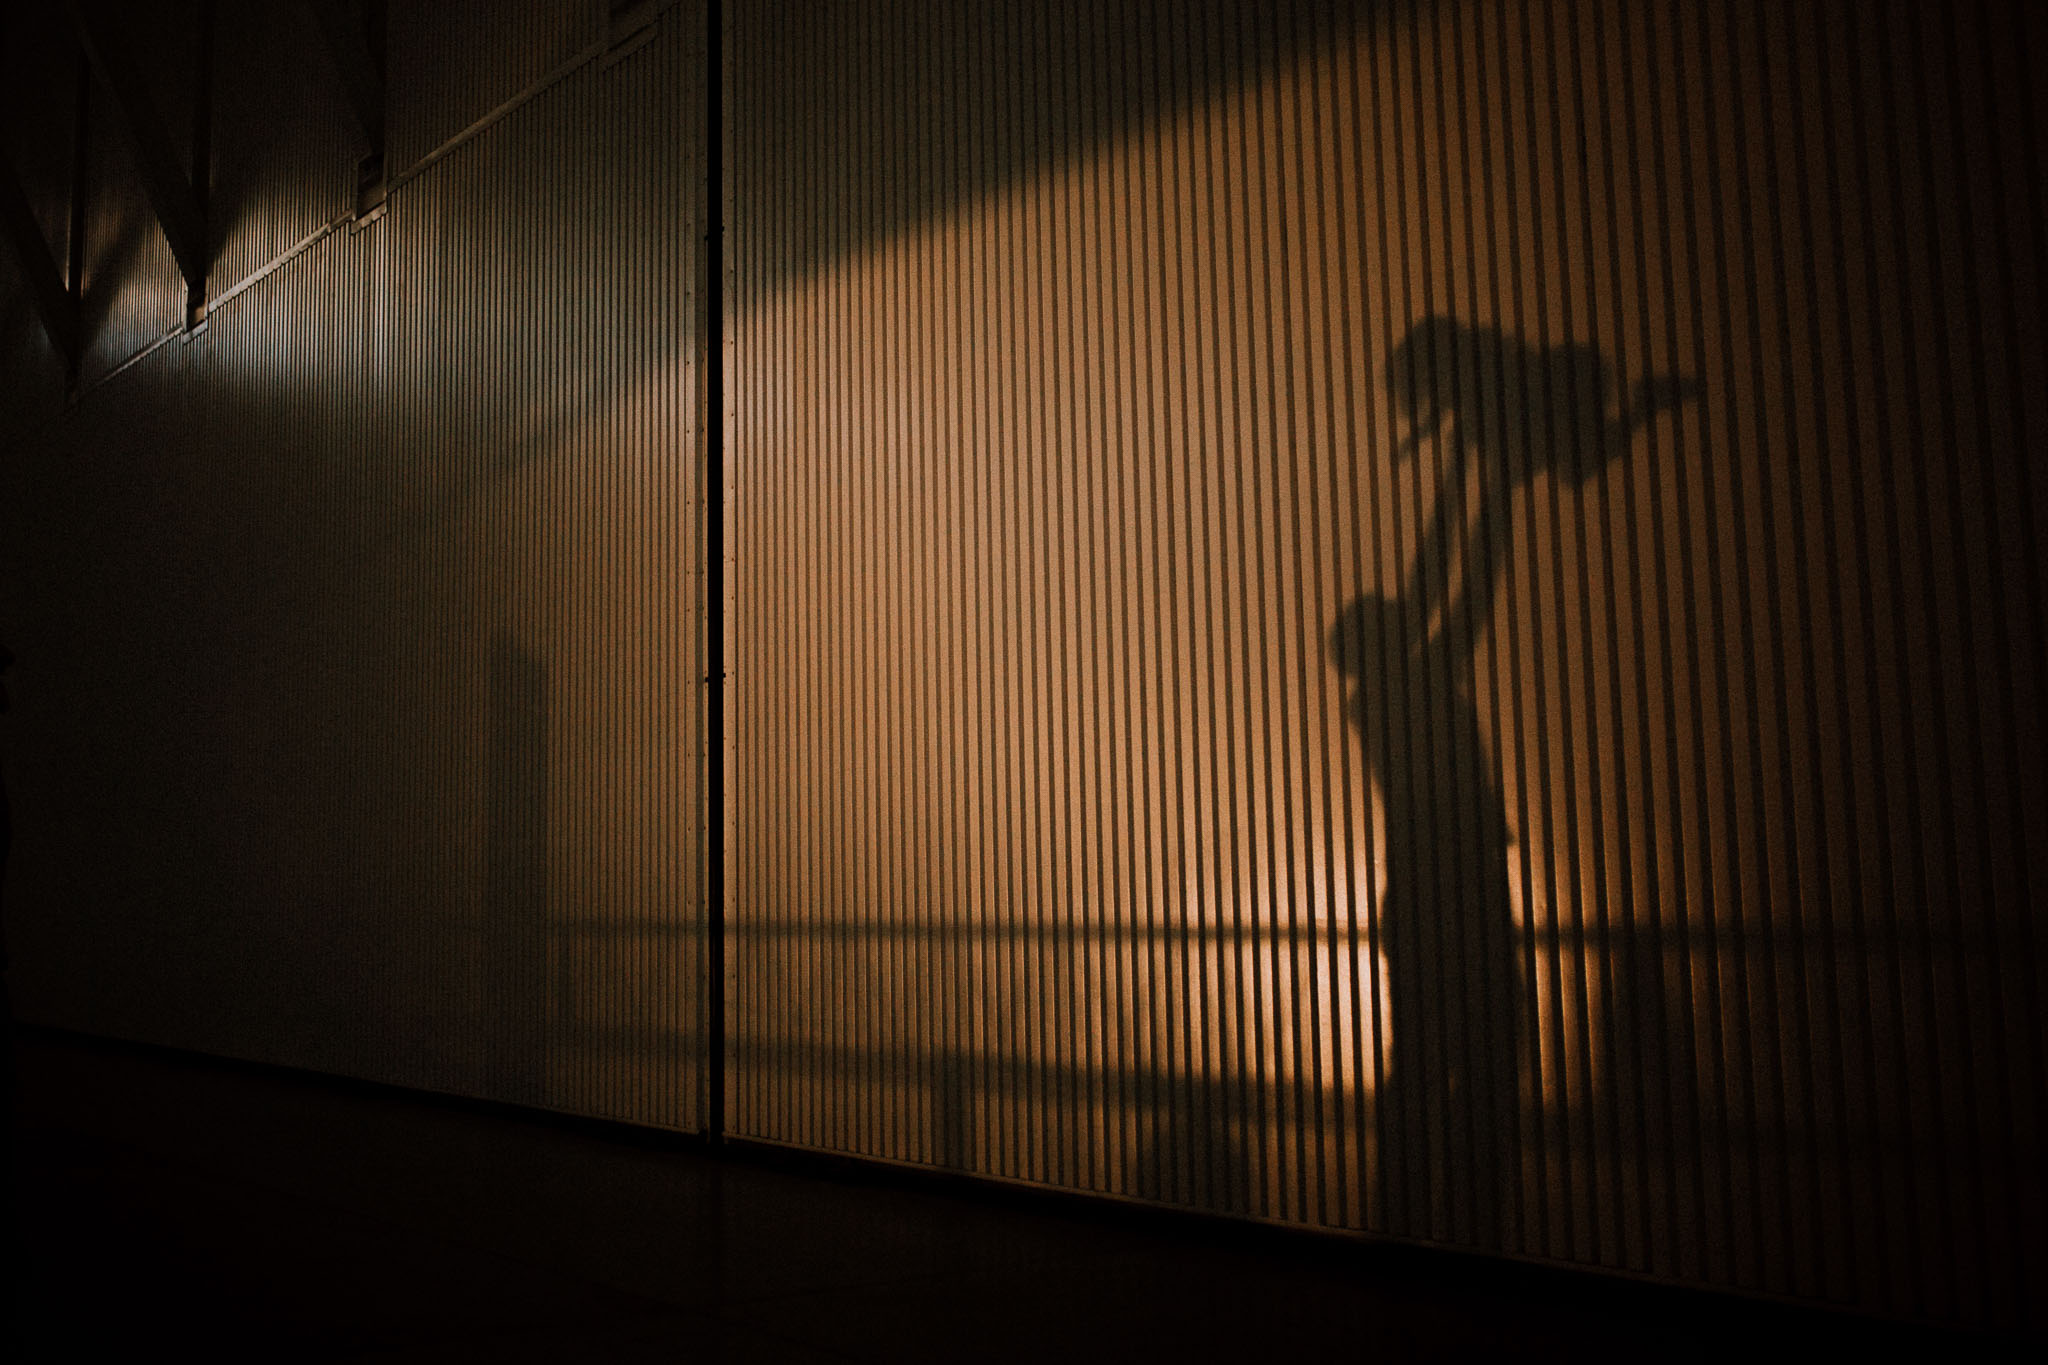 Shadow Father Daughter throw lift Udvar Hazy Air and Space Museum Toddler Girl Ashburn Virginia Lifestyle Documentary Family Marti Austin Photography